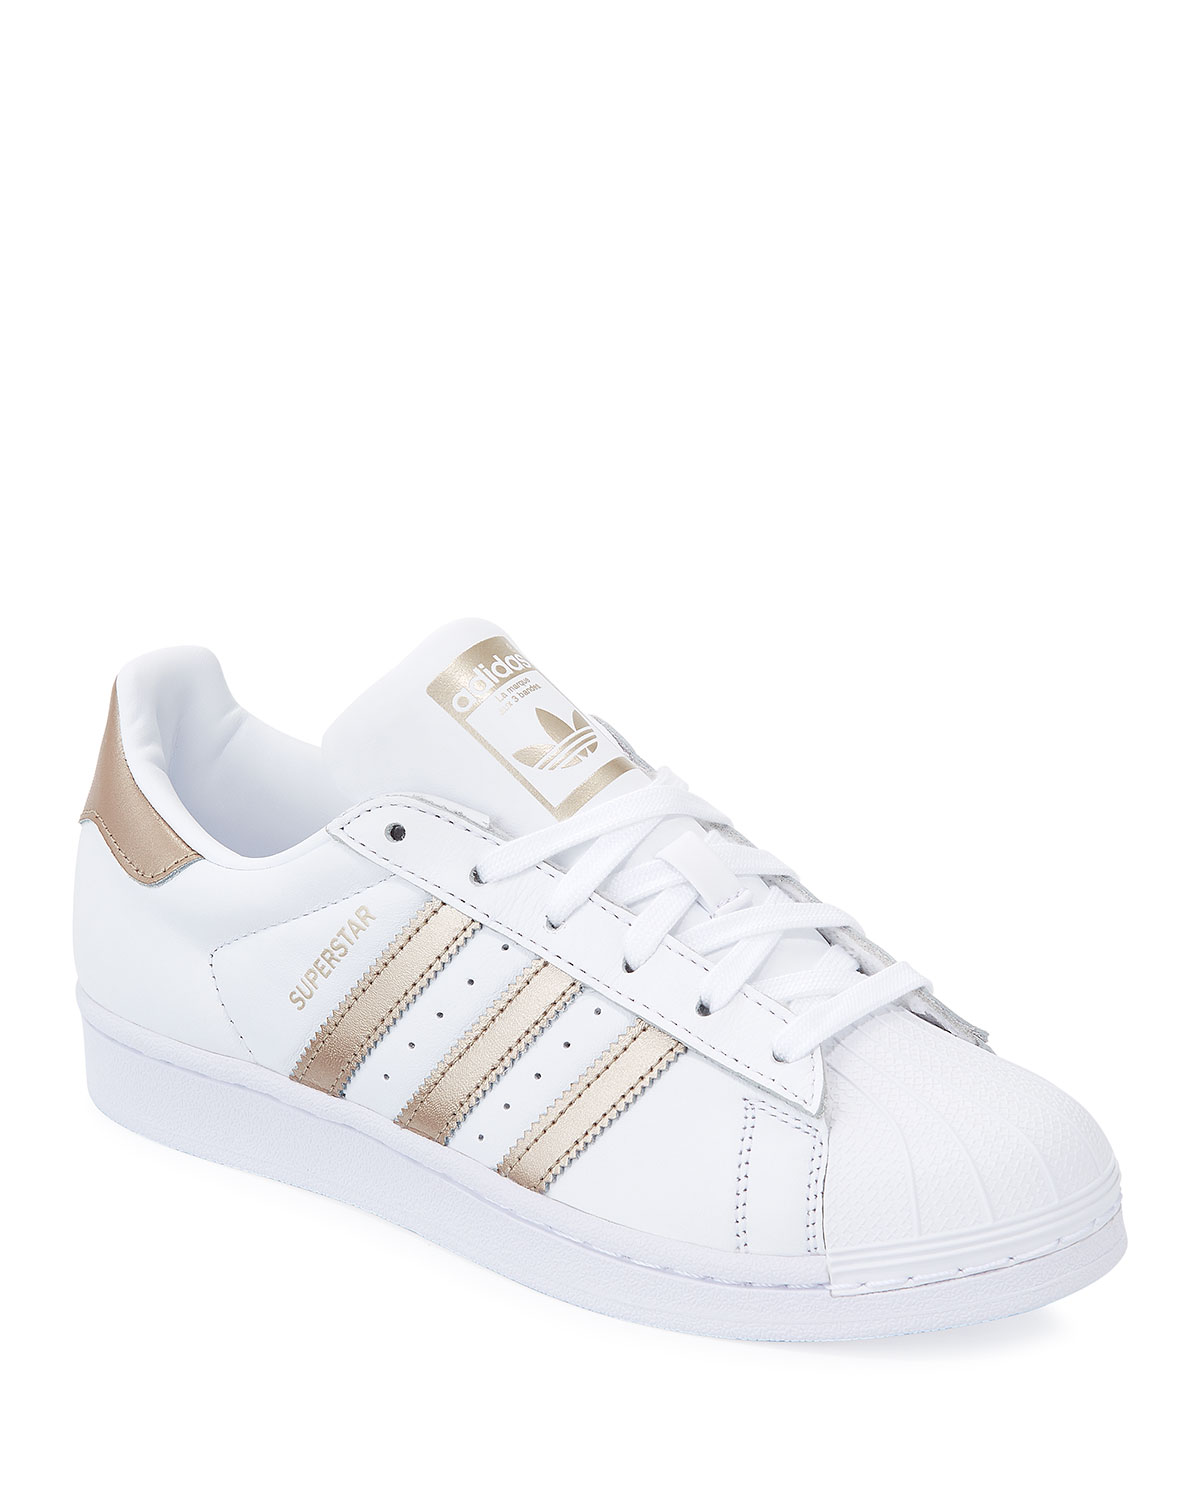 adidas superstar rose gold size 3